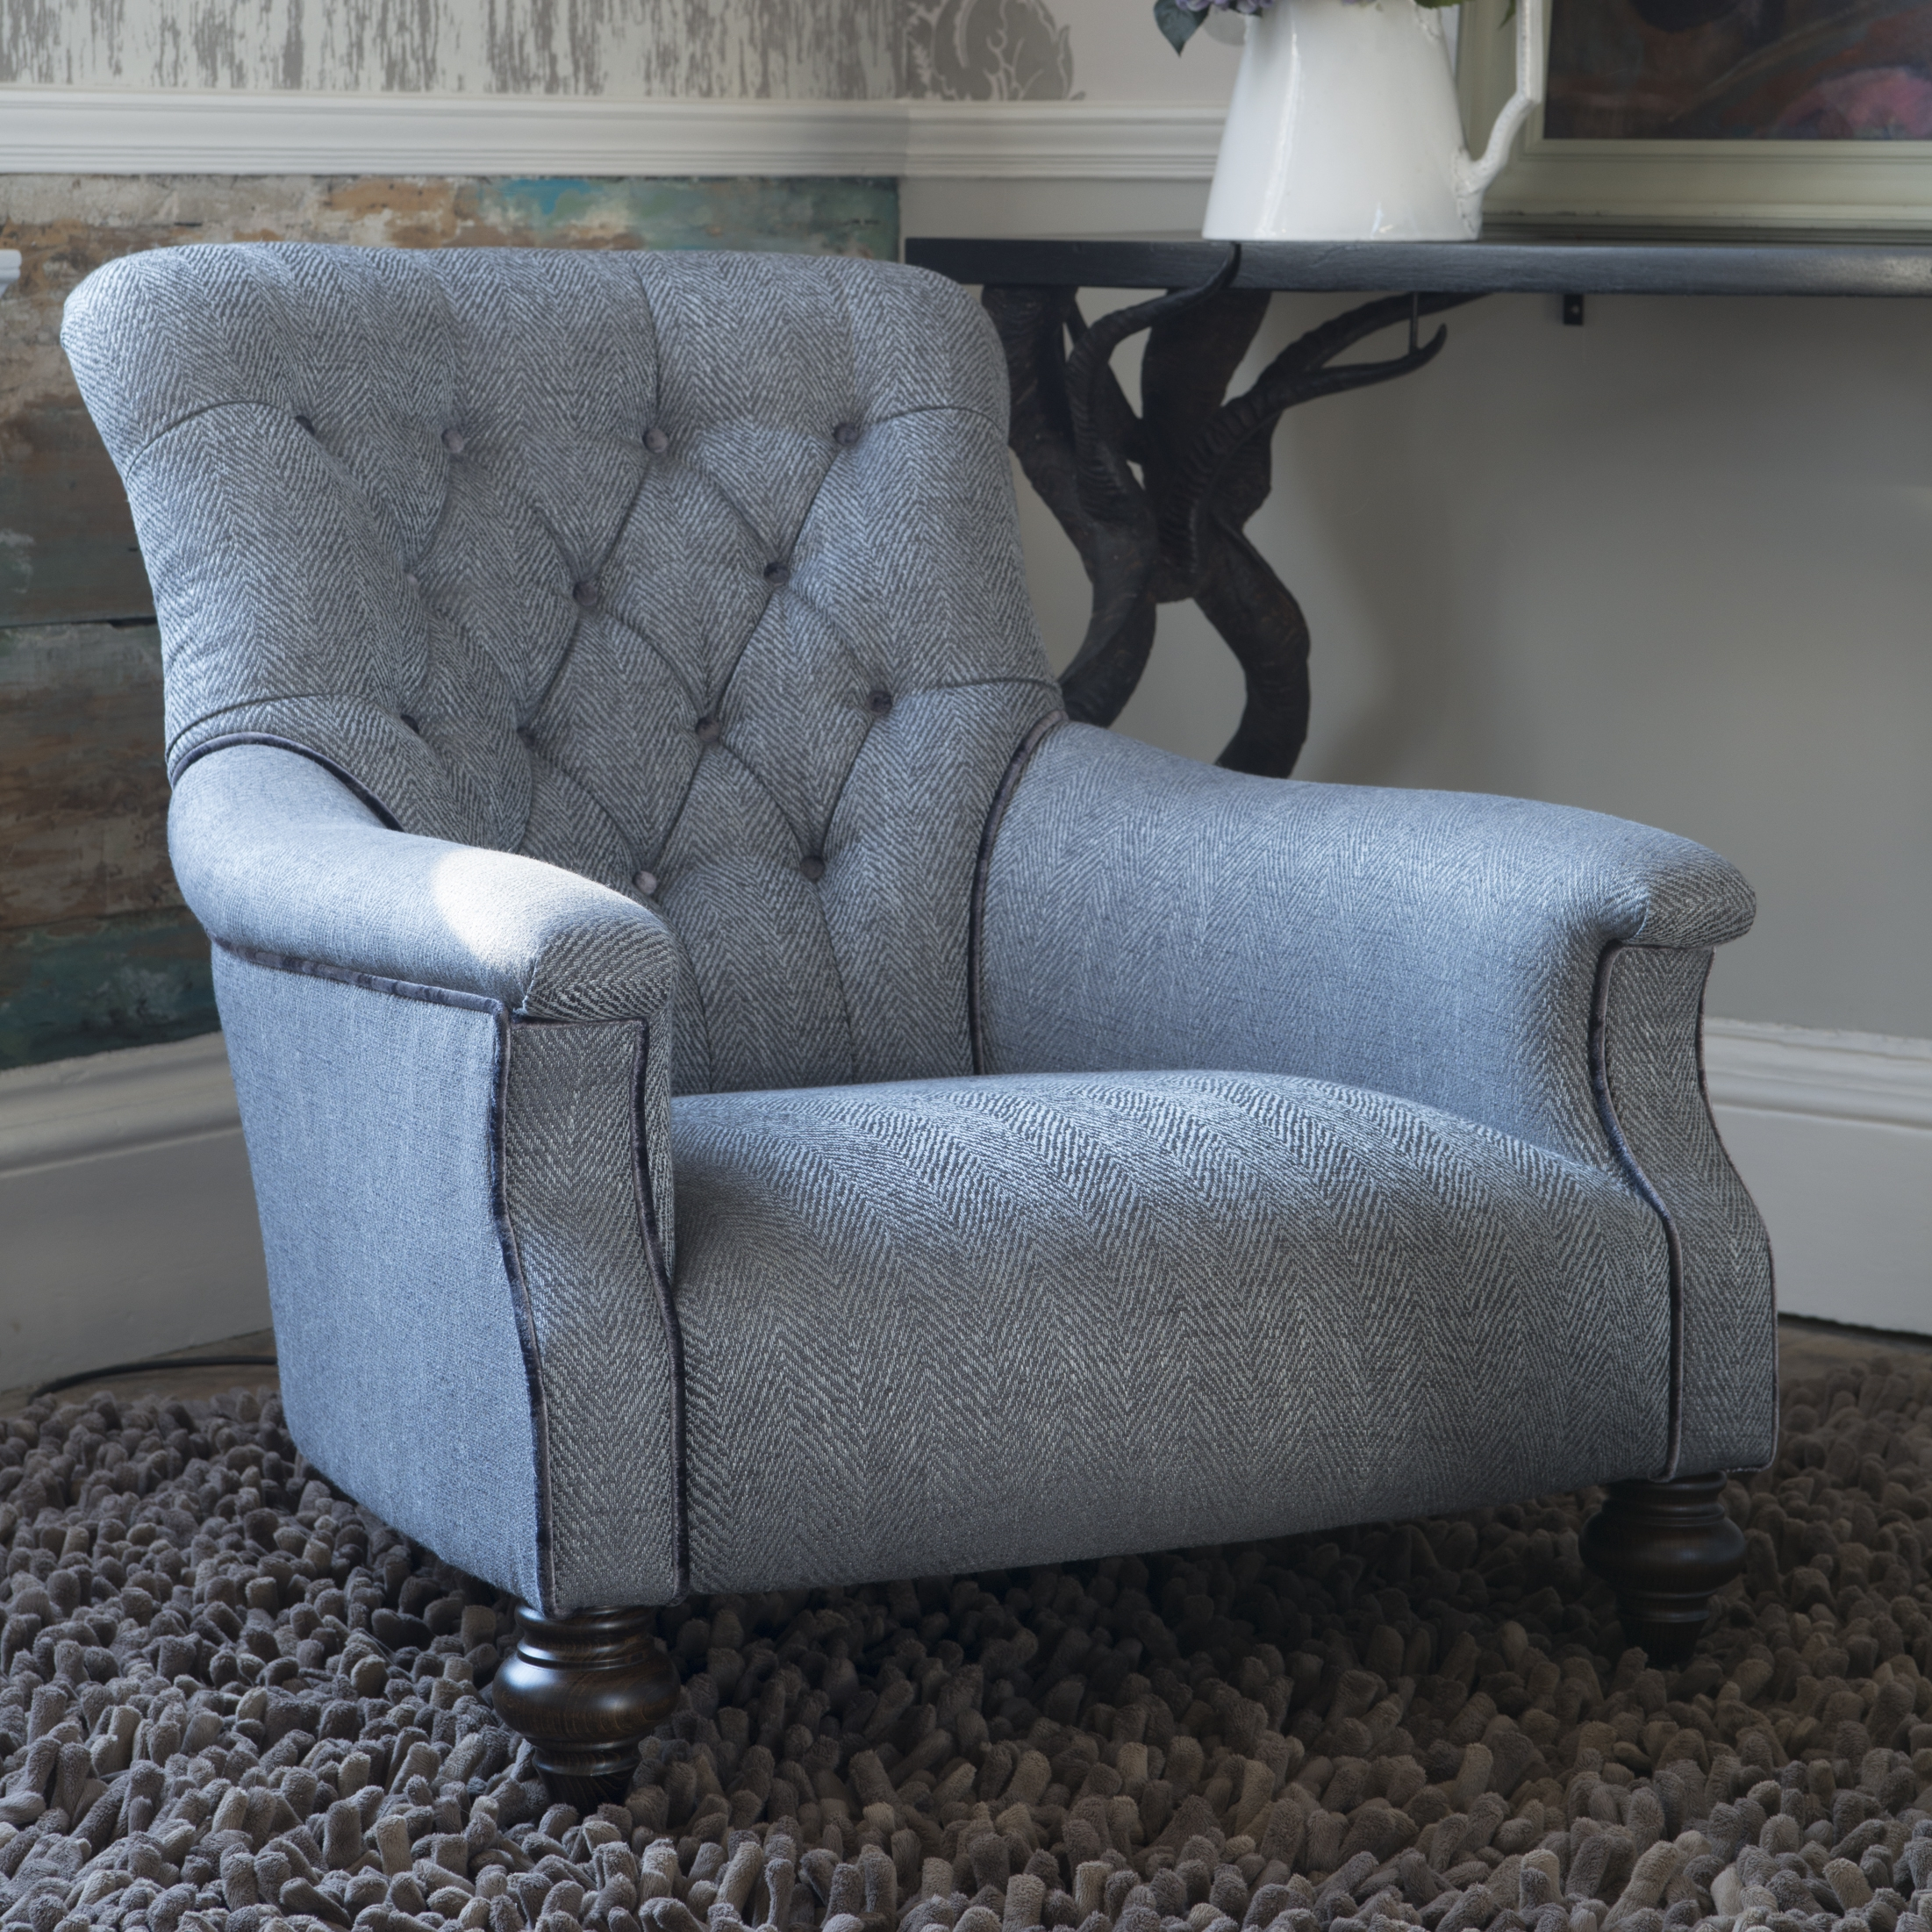 Slipper Chair  Prices start from £1755